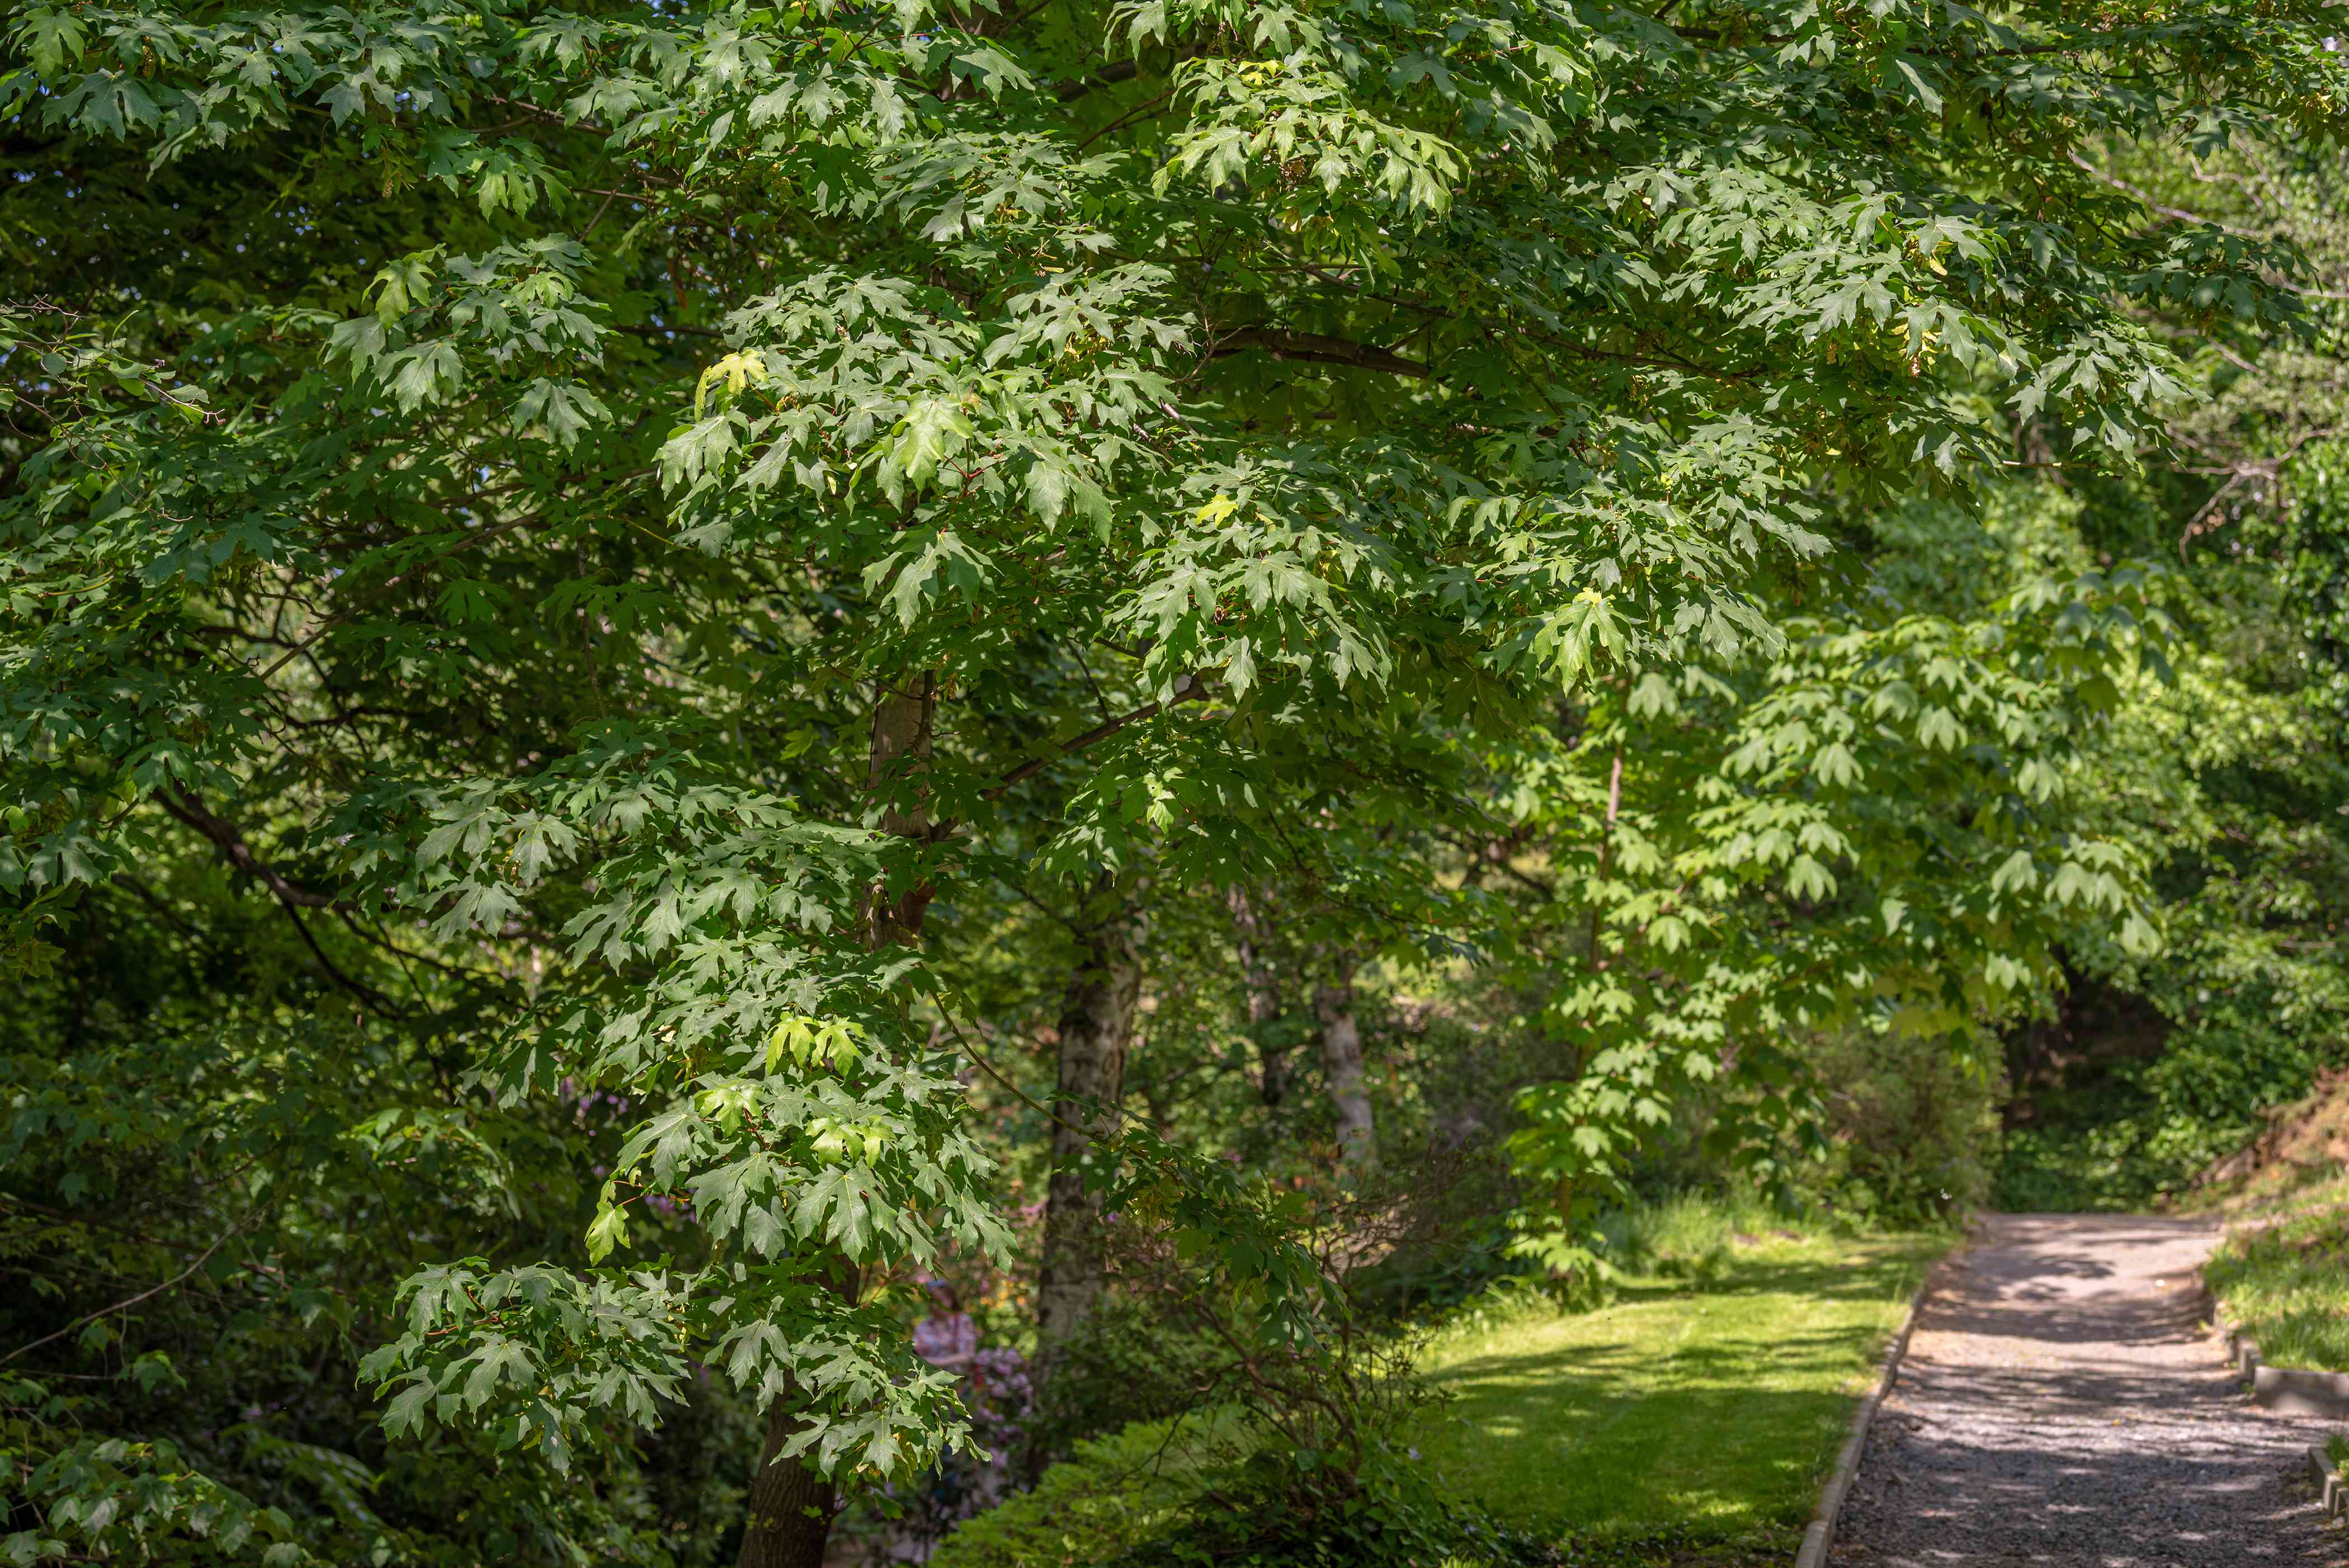 Big leaf maple trees with large green leaves hanging on branches covering pathway